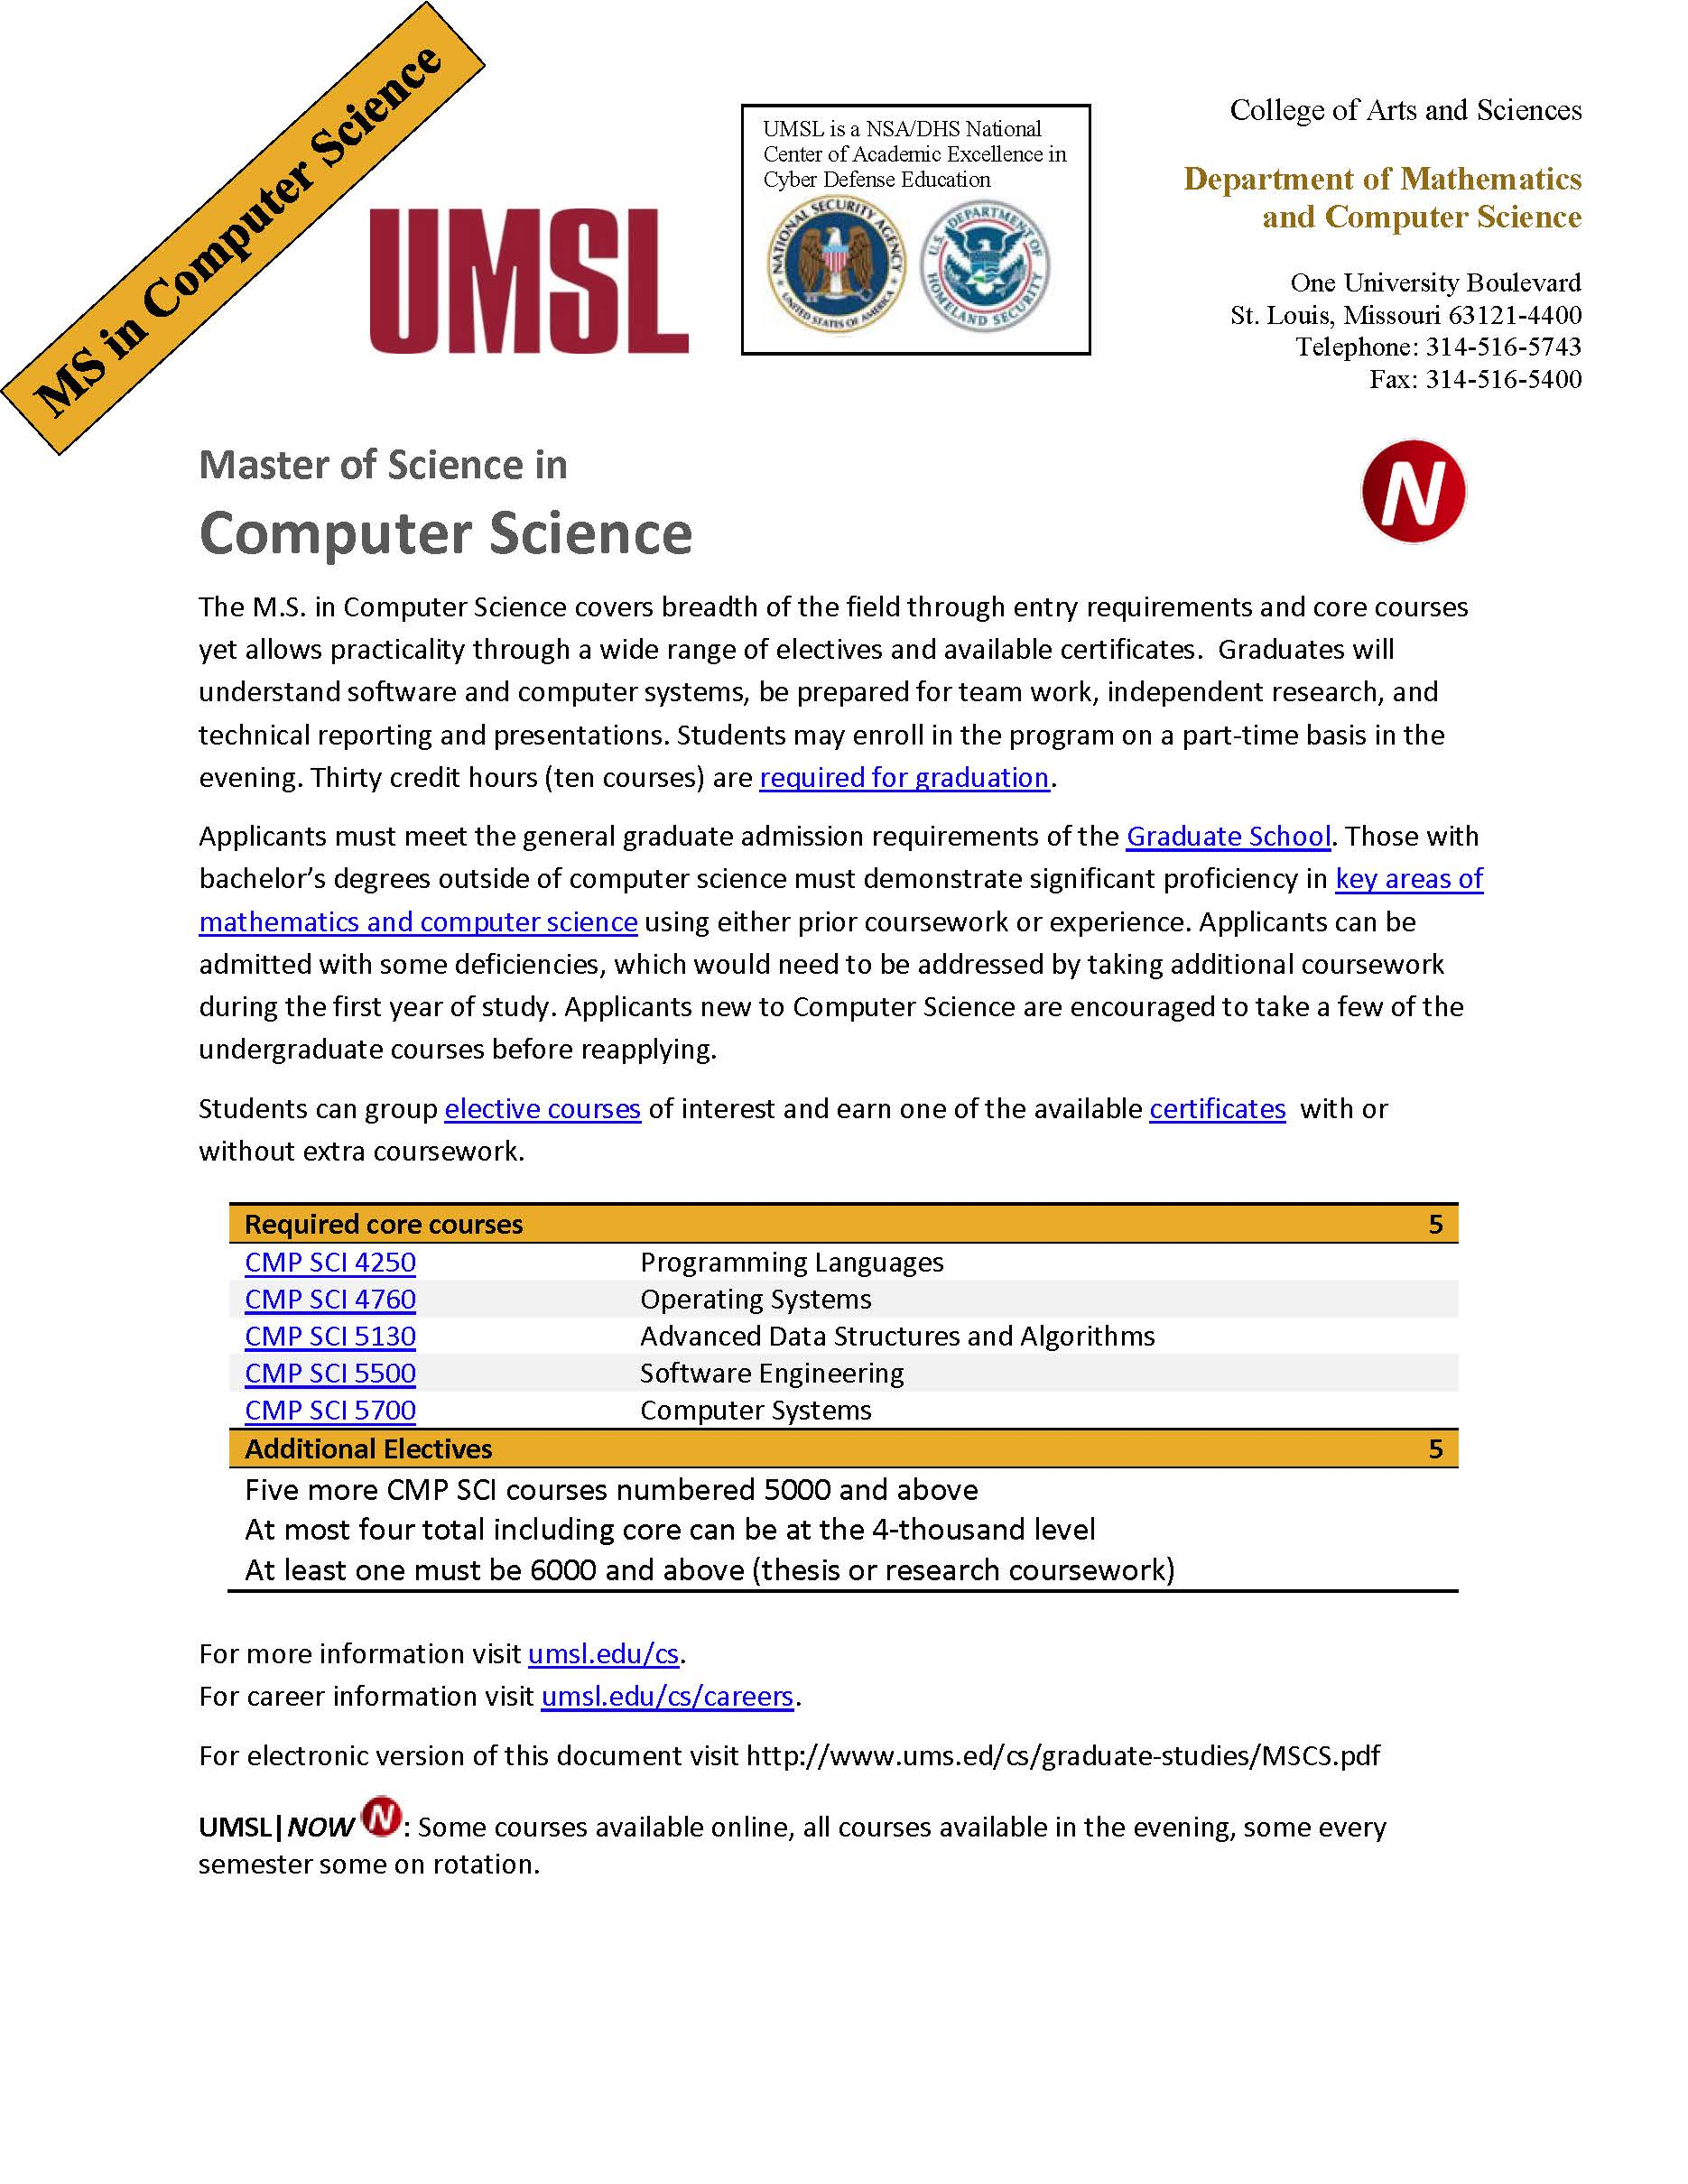 application of computer science in finance